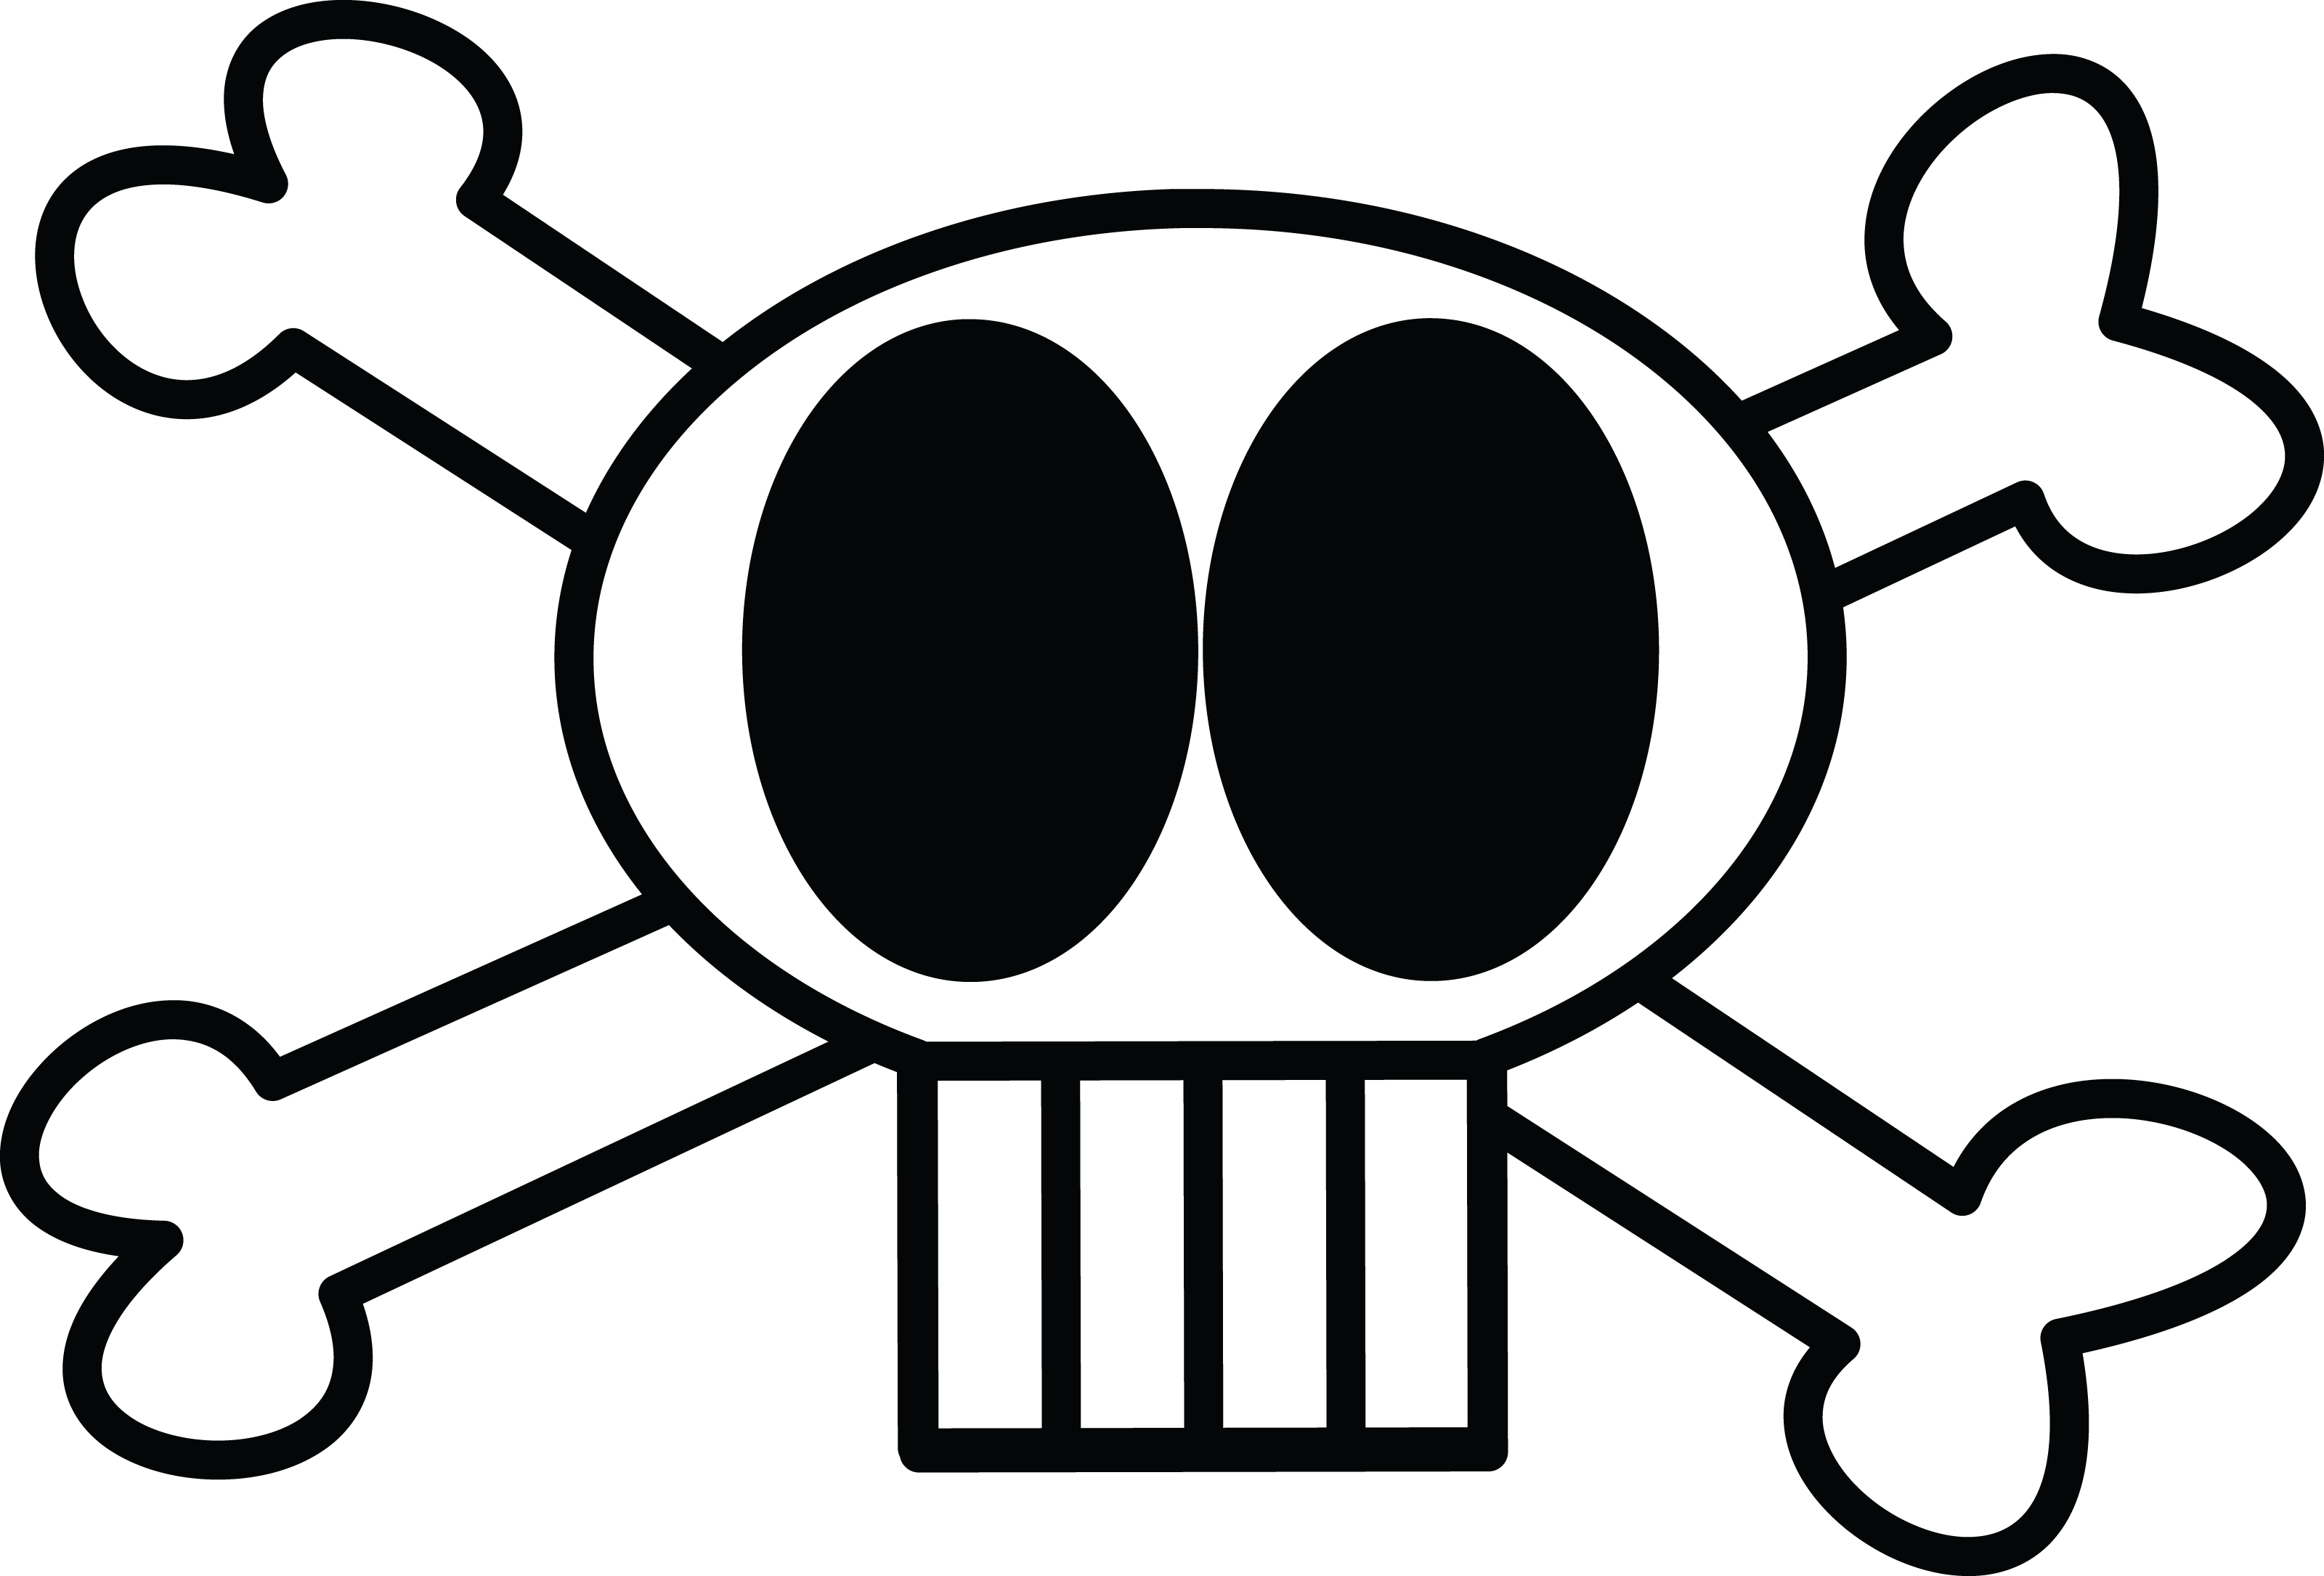 Of Skull And Crossbones